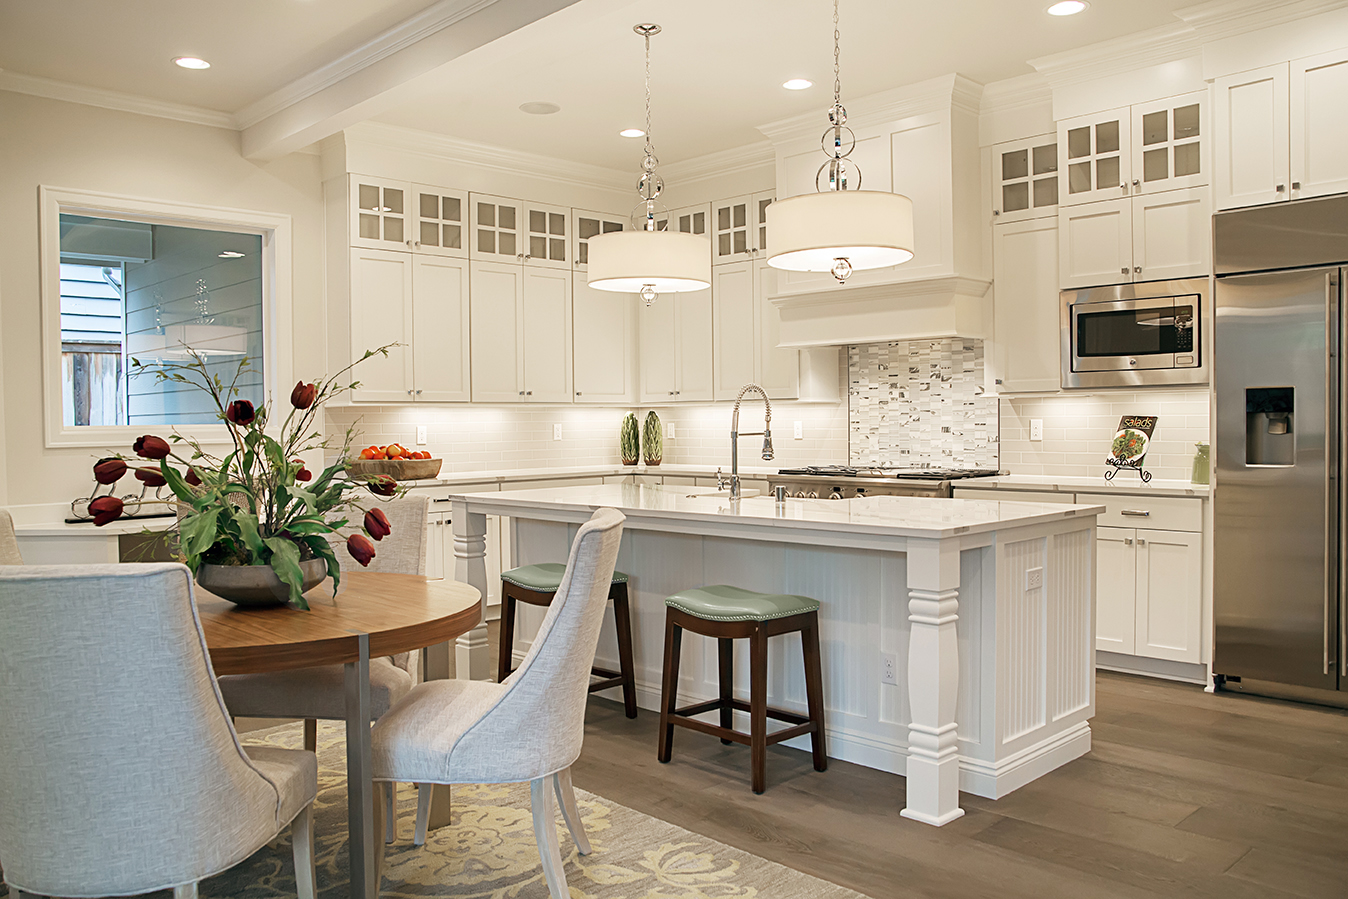 Signature Interiors Kitchen 2242.jpg